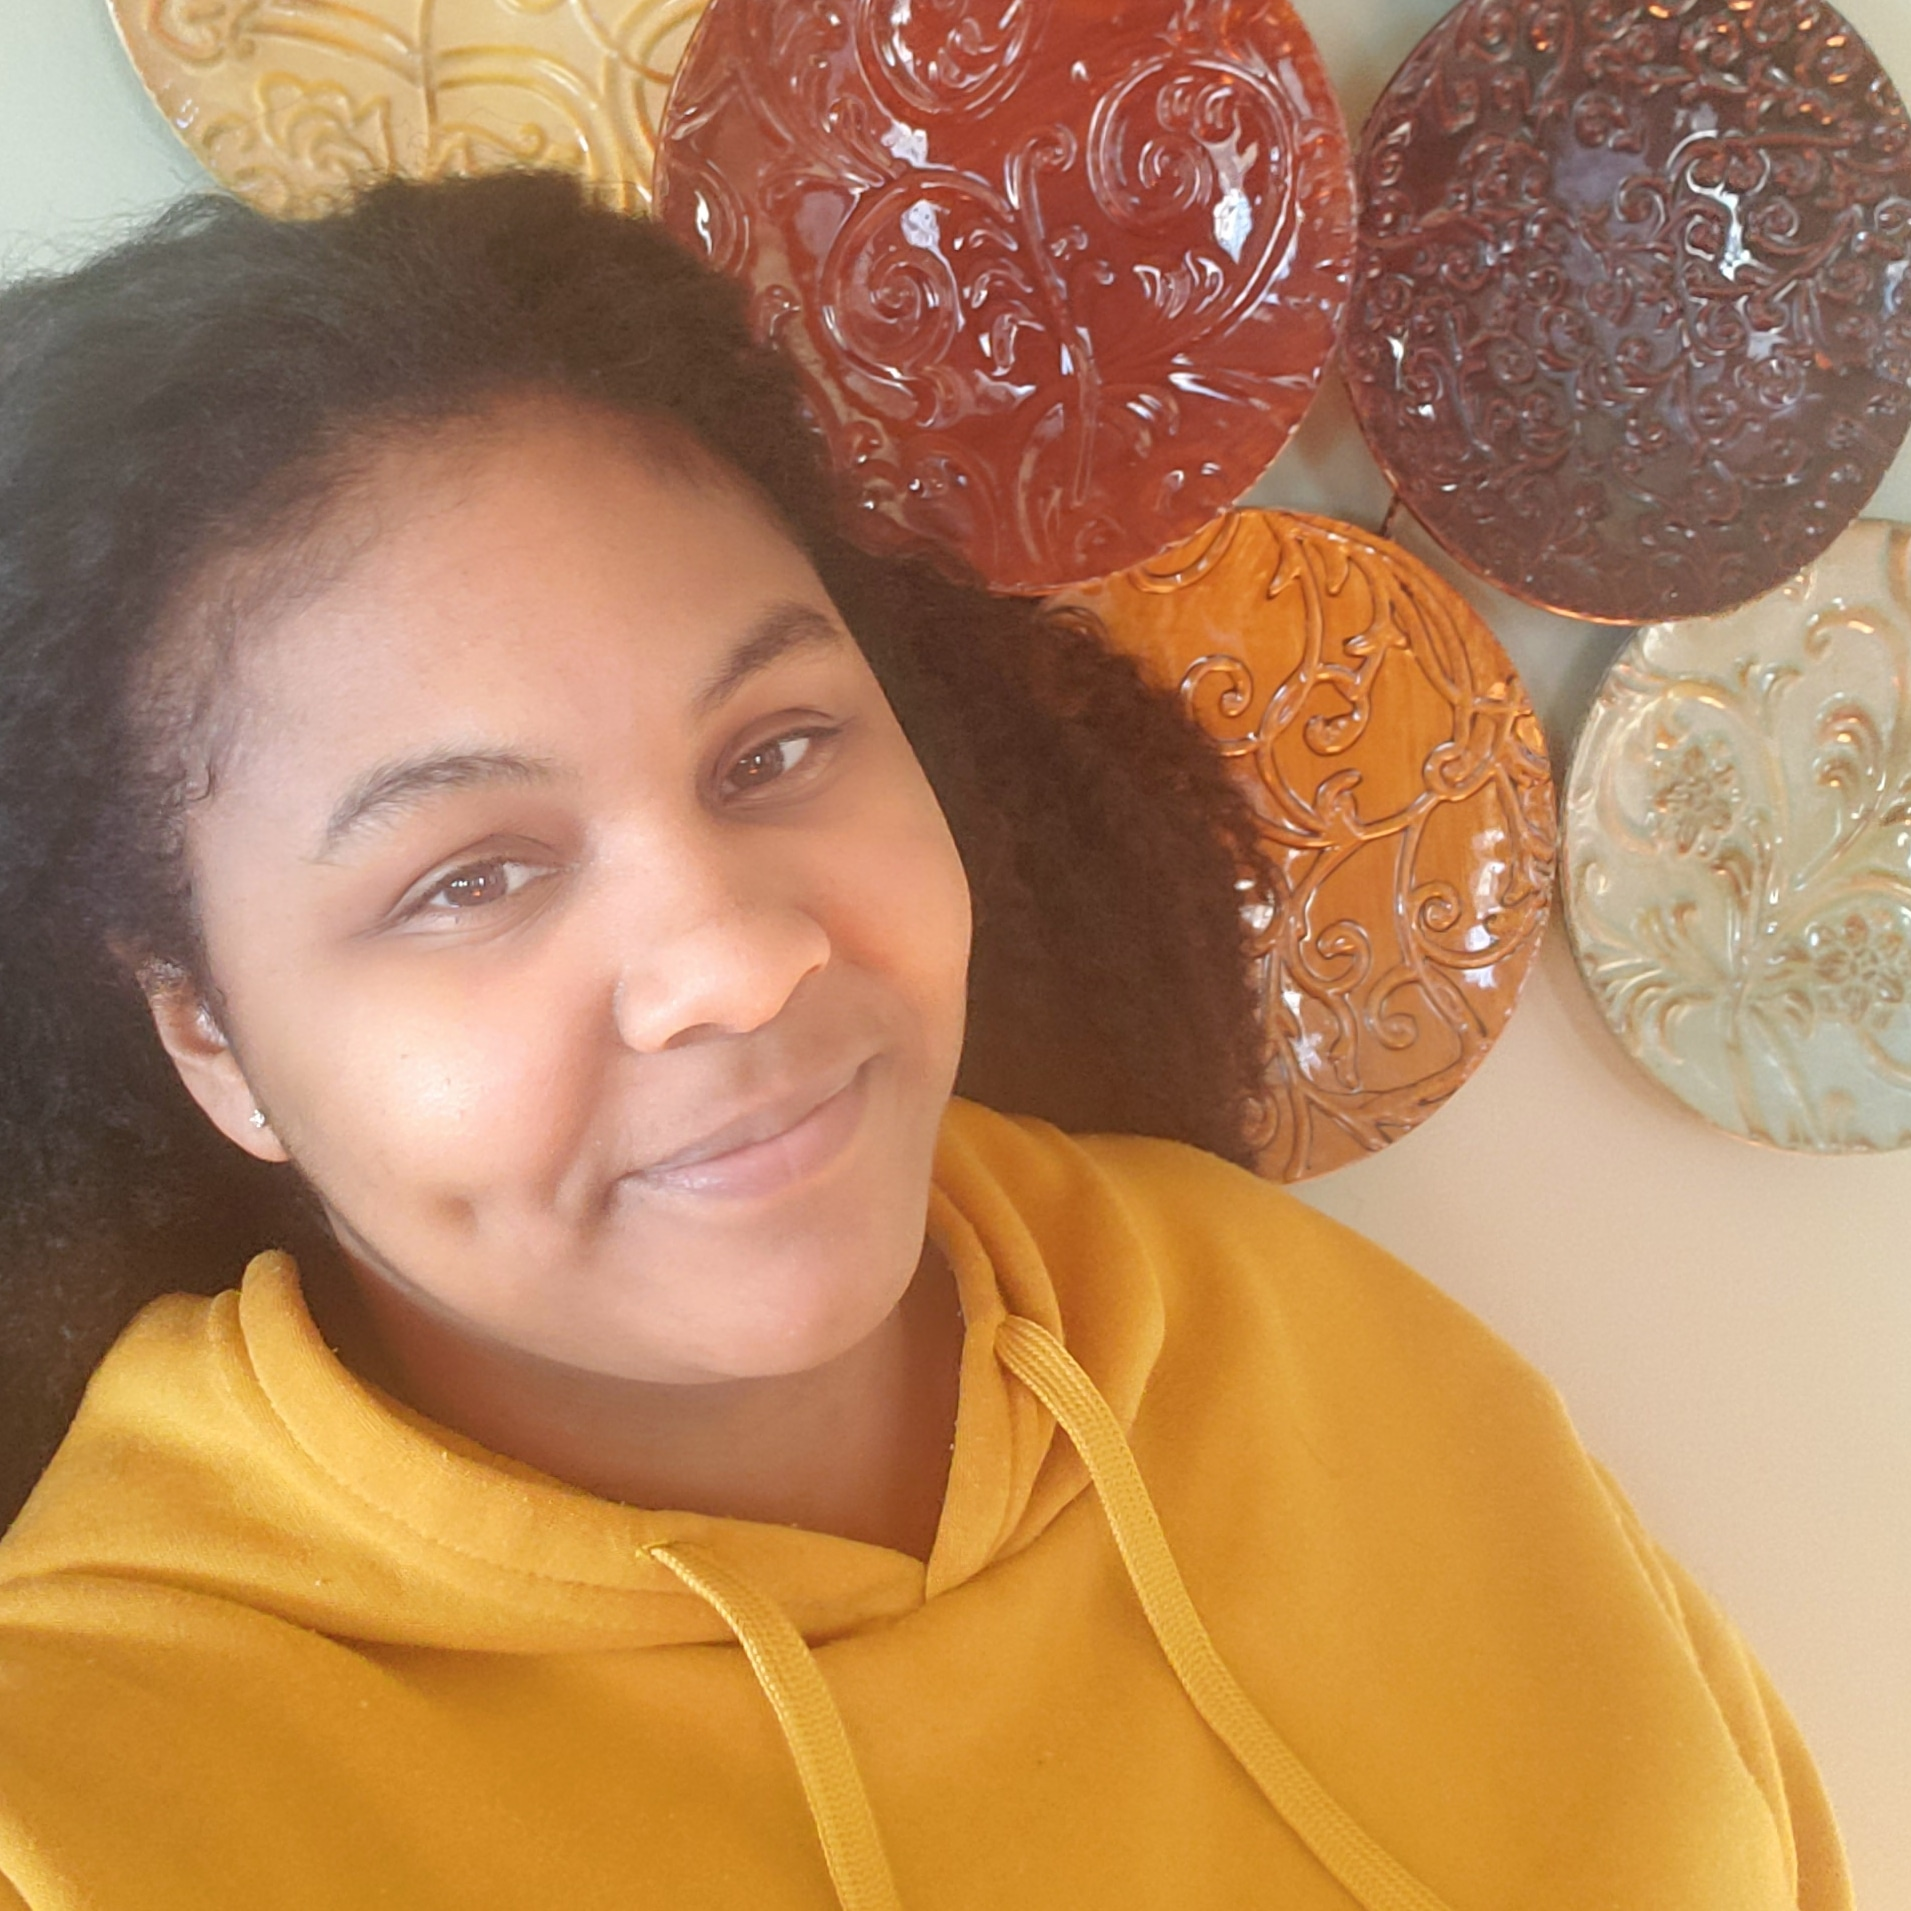 Tia Lendor - Hi everyone! My name is tia. I joined Pursuit seeking a challenge, and to grow my career skillset. Im excited to get started!Fun fact: I knit in my spare time :)See you soon!